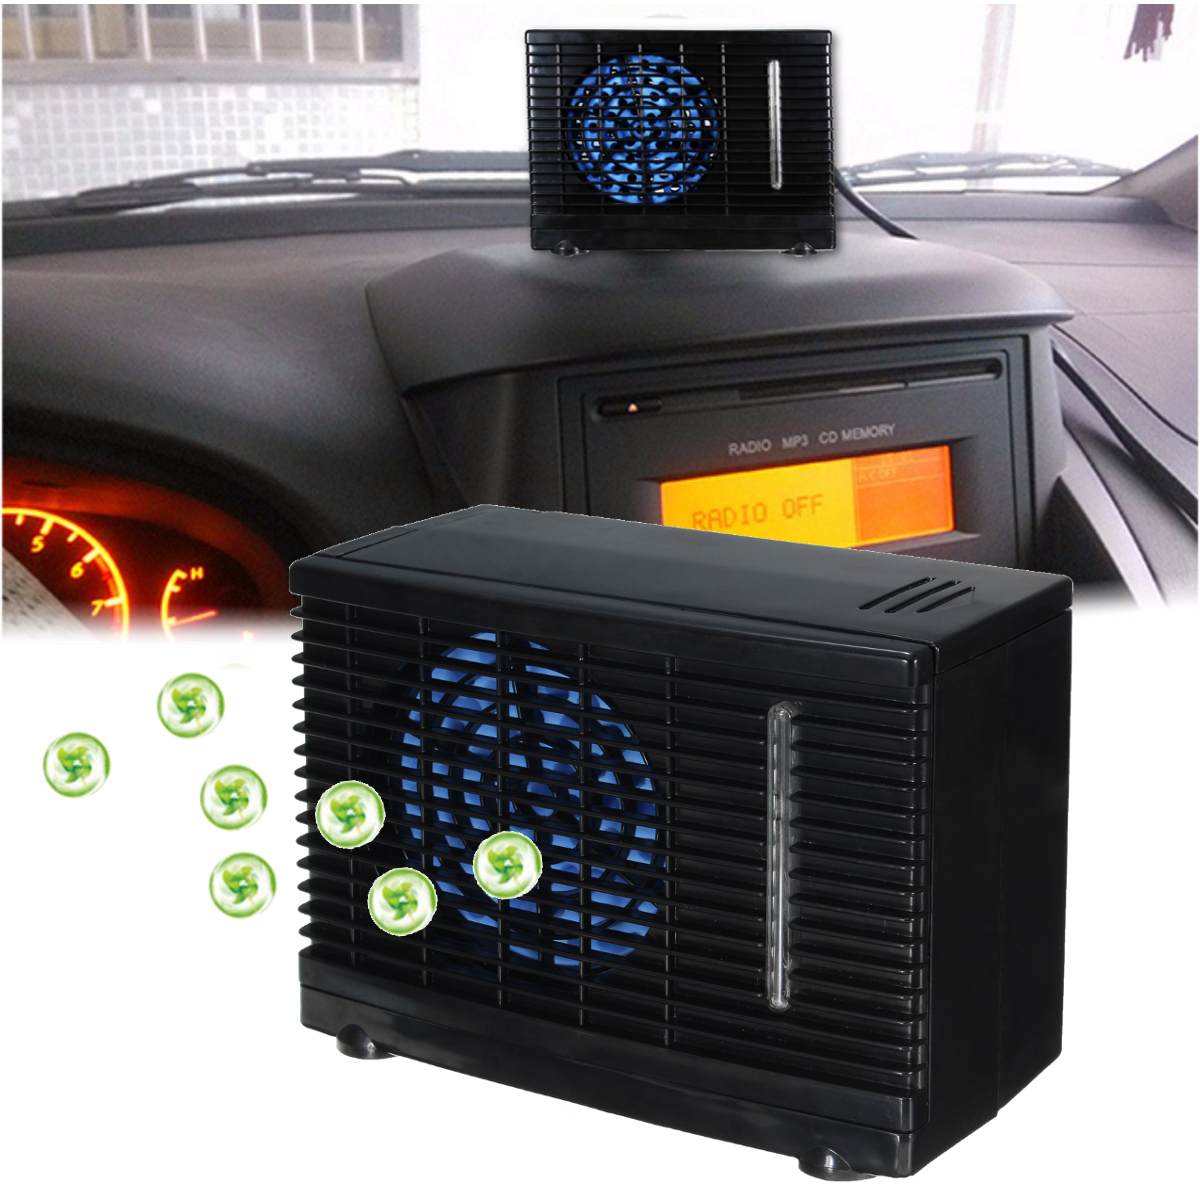 Fan That Blows Cold Air >> 12V Portable Home Car Cooler Cooling Fan Water Ice ...